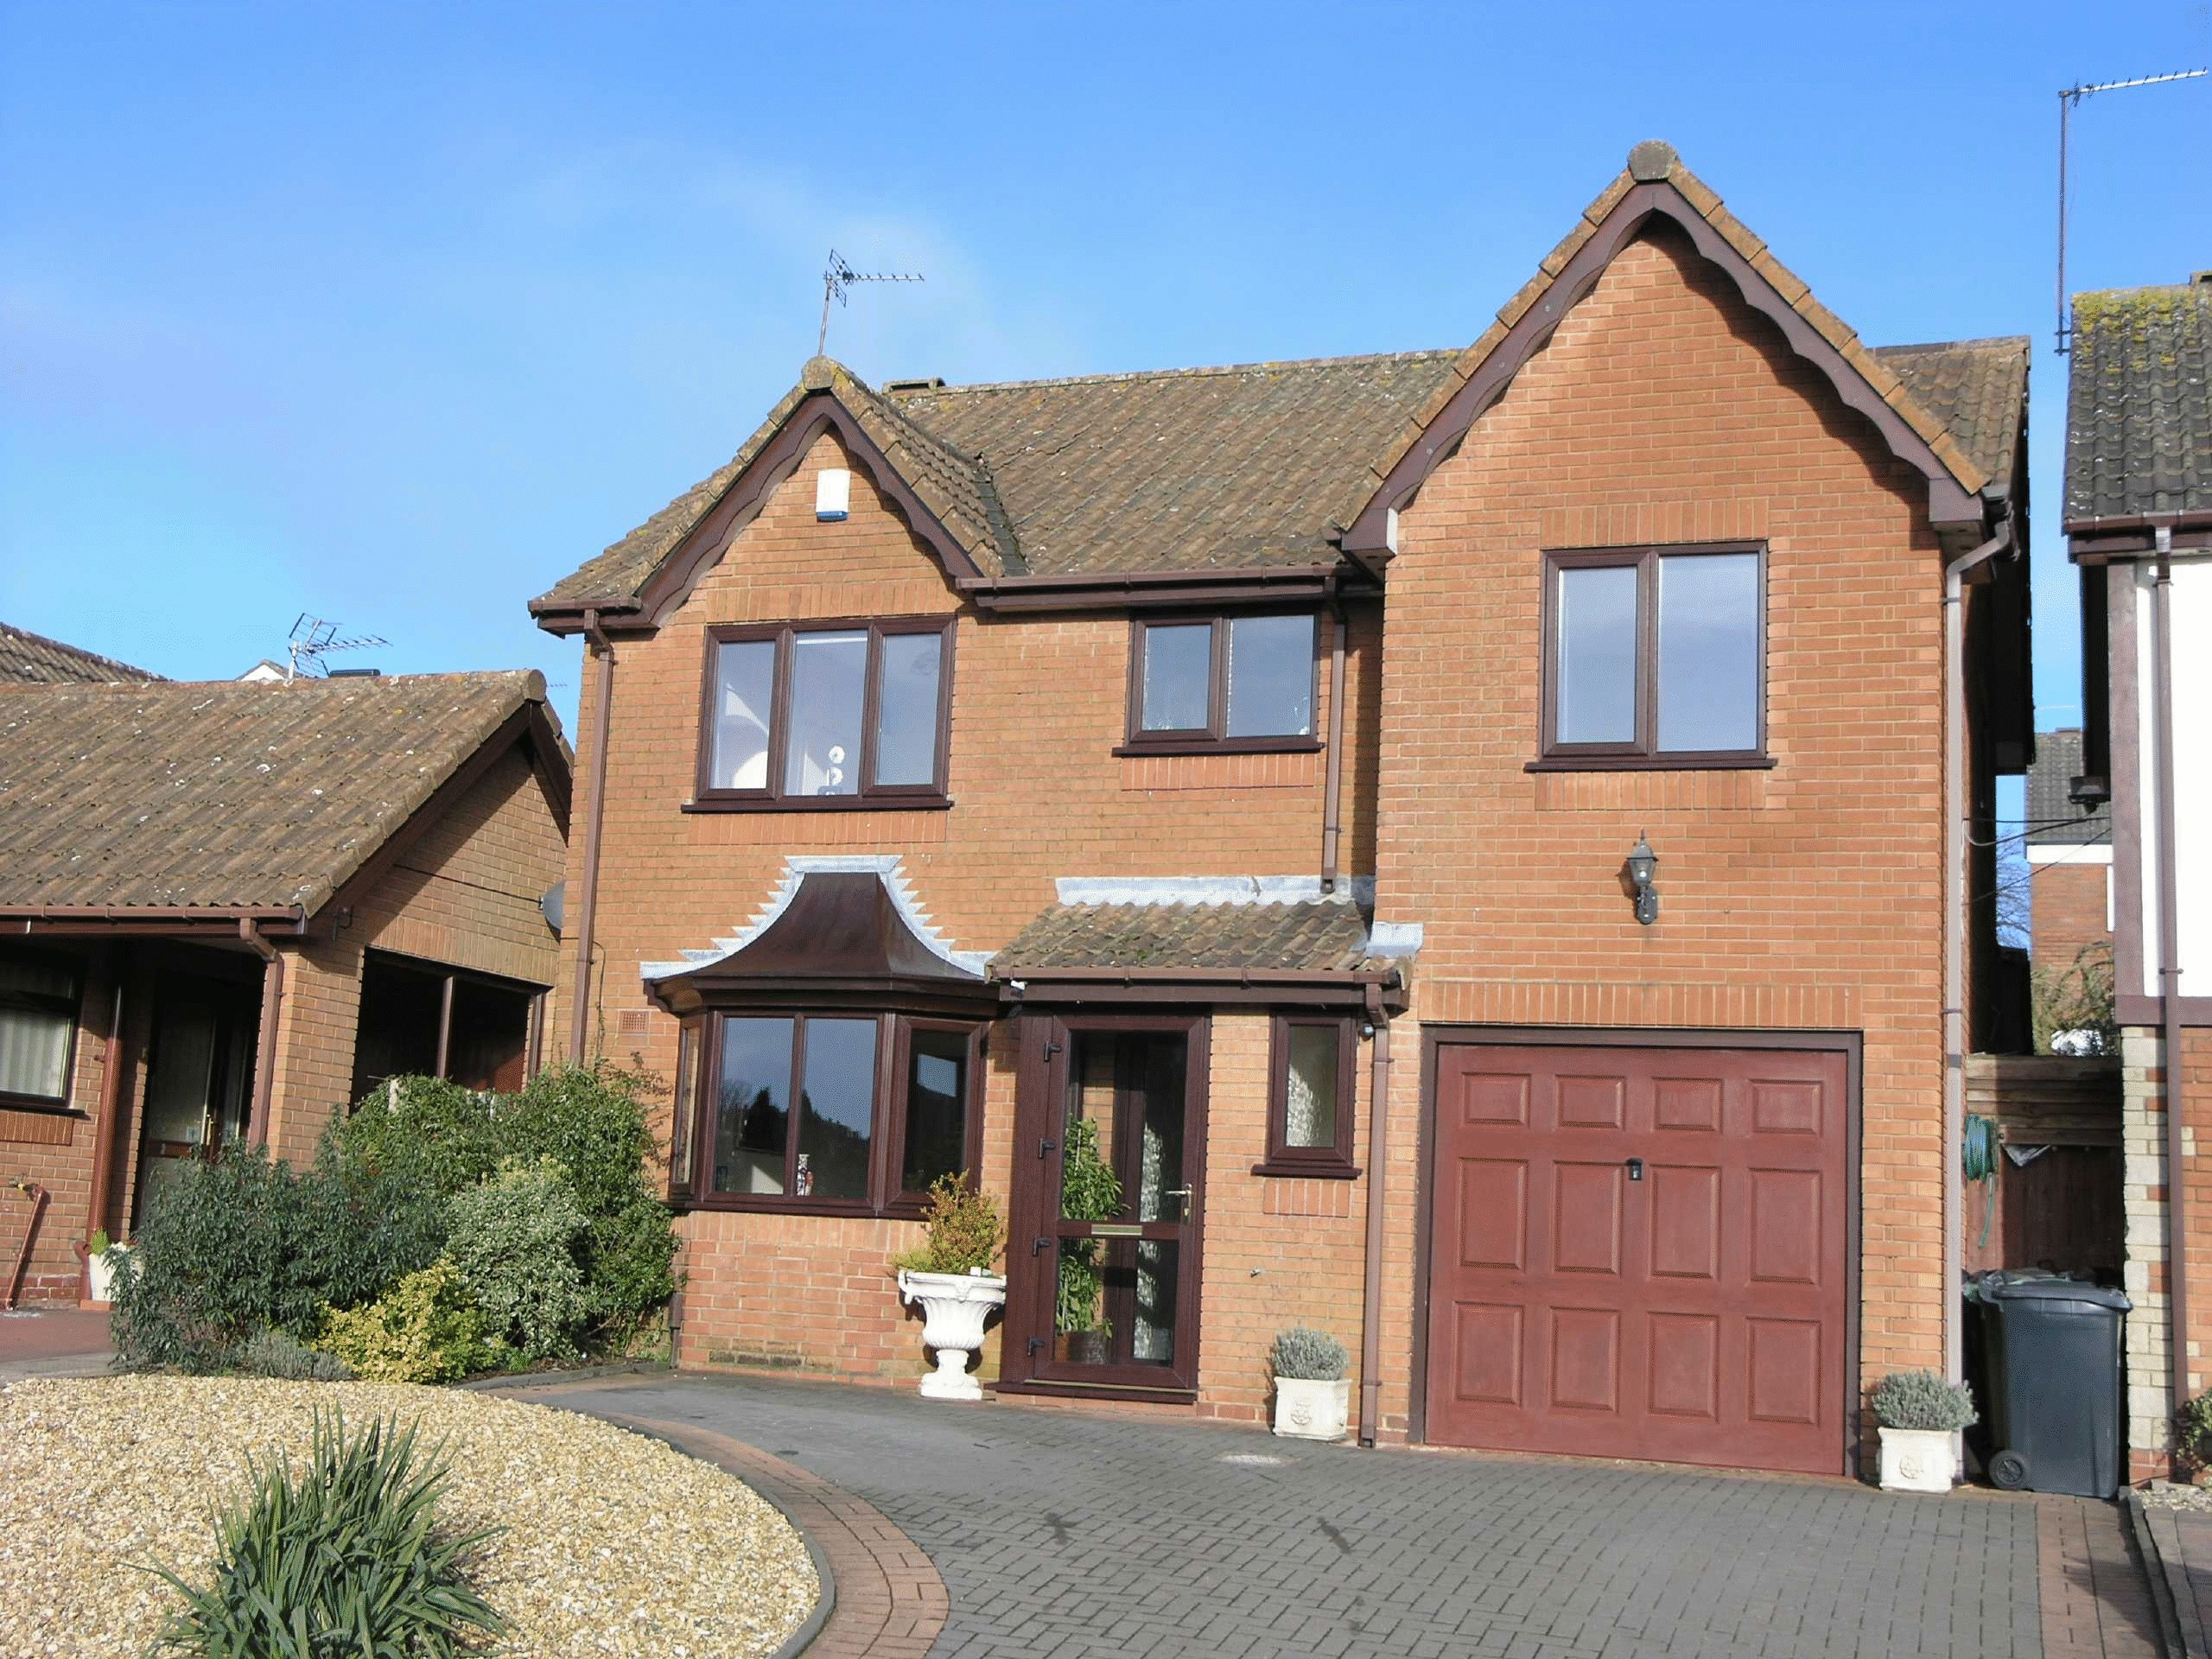 4 Bedrooms Detached House for sale in Tamar Drive, Woodsetton, Dudley, West Midlands, DY3 1DA